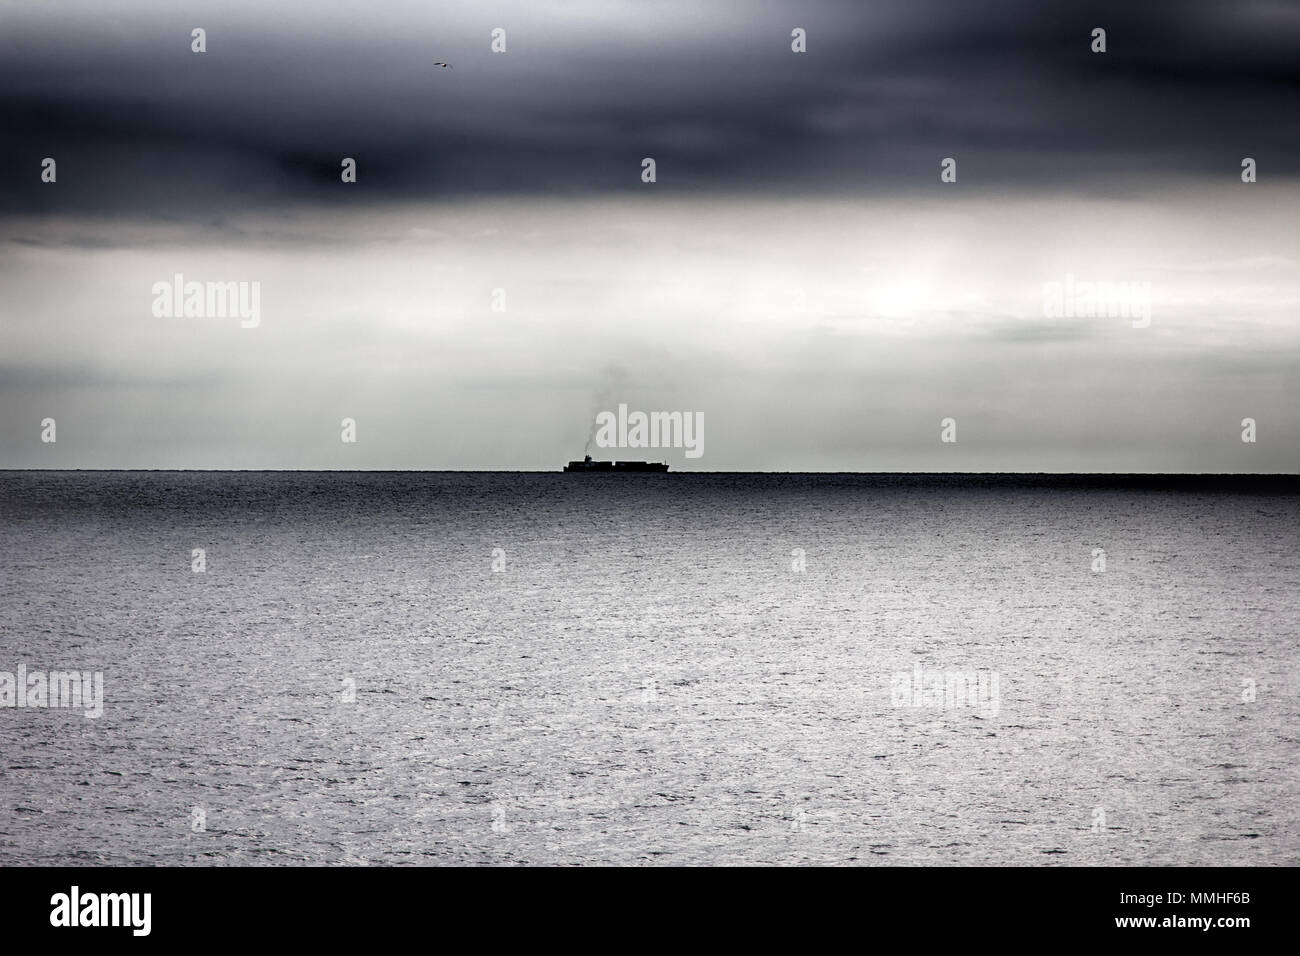 container ship in vastness of the Mediterranean sea, wintertime and dreary winter sea, high-sea shipping; maritime trade; sea shipping; seaborne trade Stock Photo